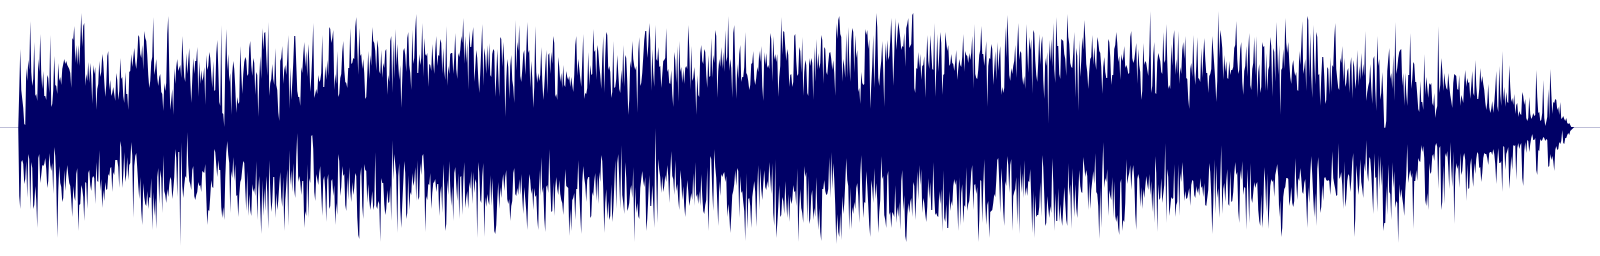 waveform of track #143220